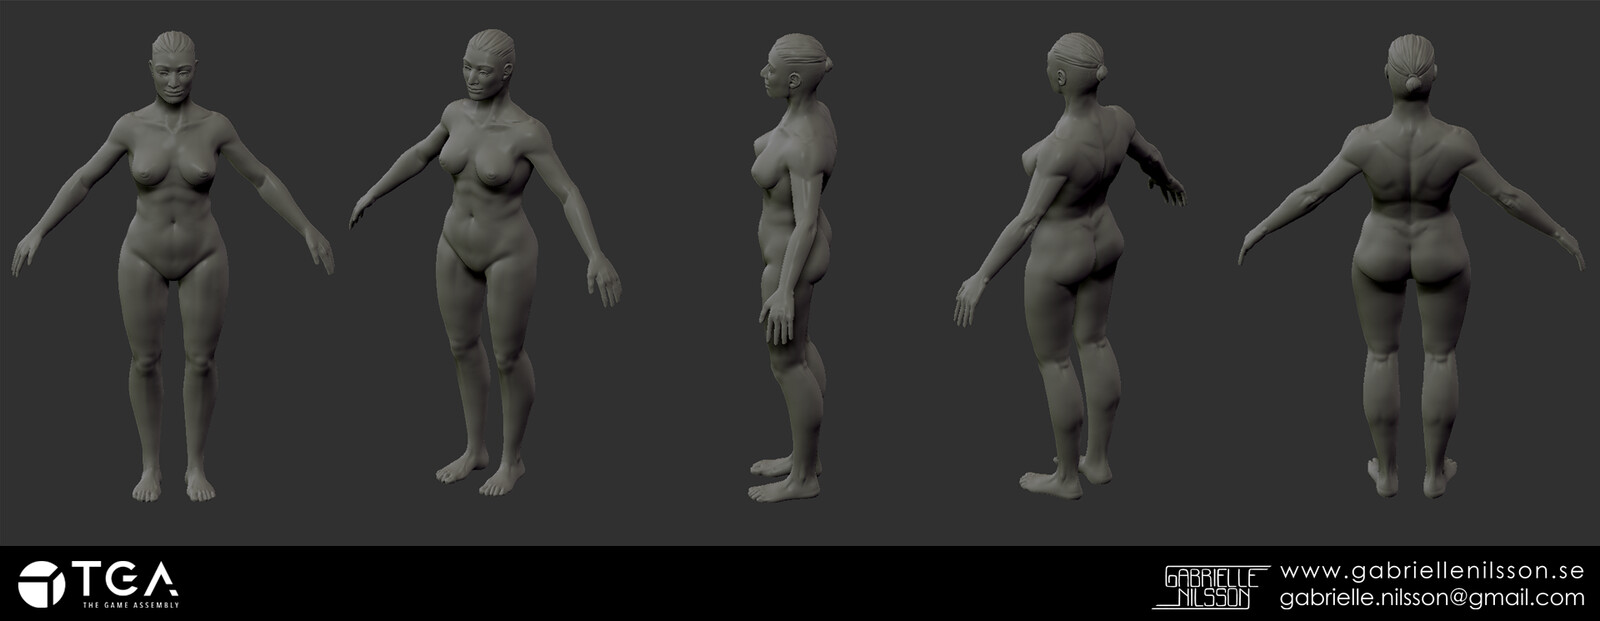 First attempt at a realistic body, sculpted in zBrush.